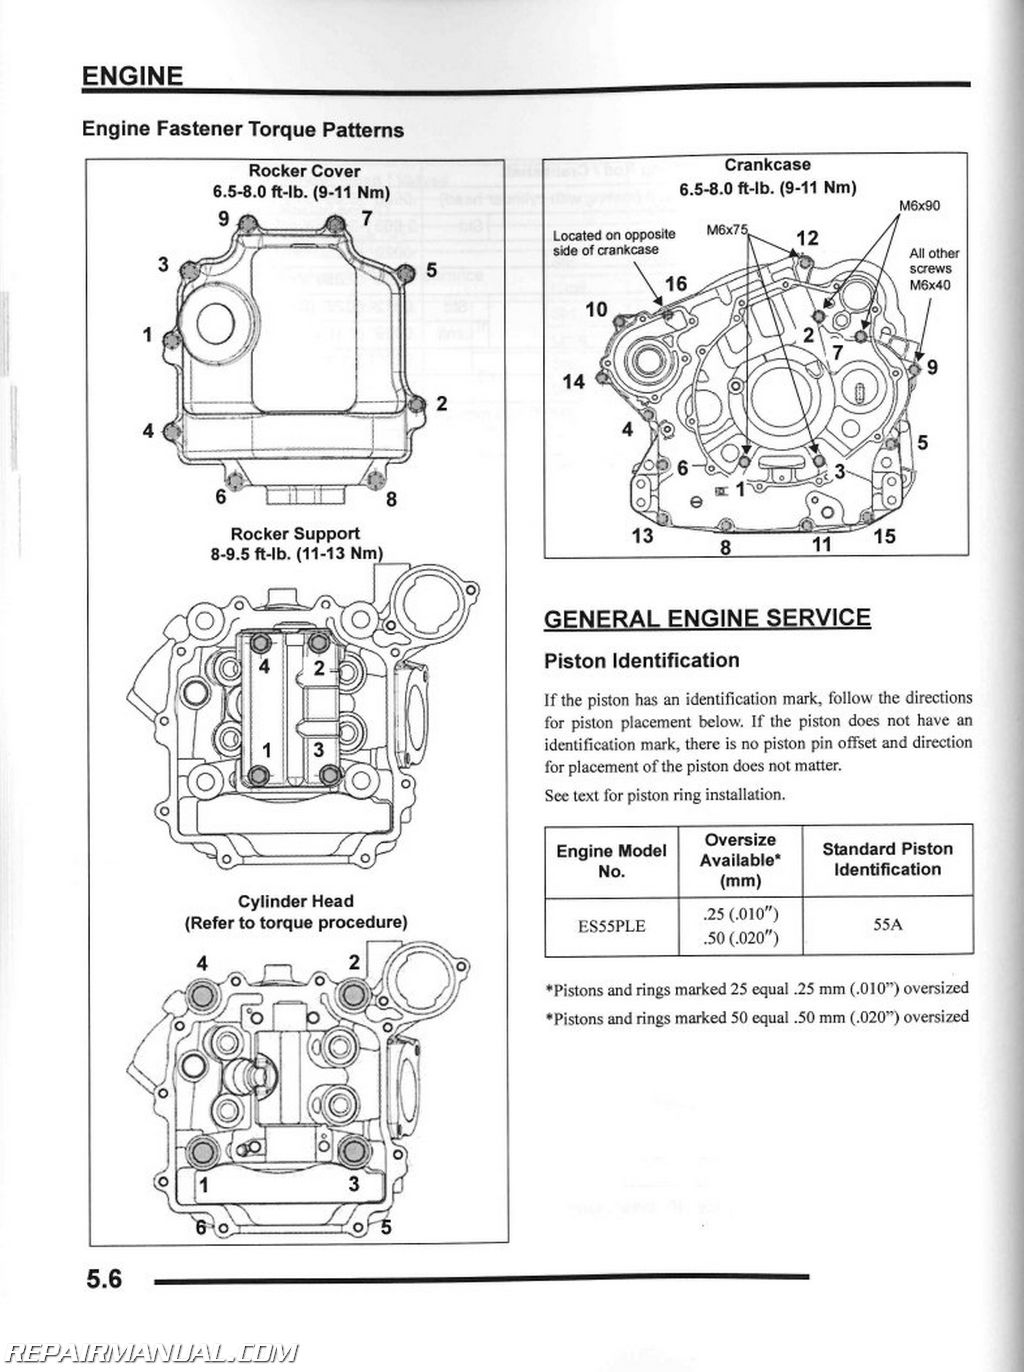 2002 polaris sportsman 500 winch wiring diagram best wiring library2002 polaris sportsman 500 wiring diagram share the knownledge